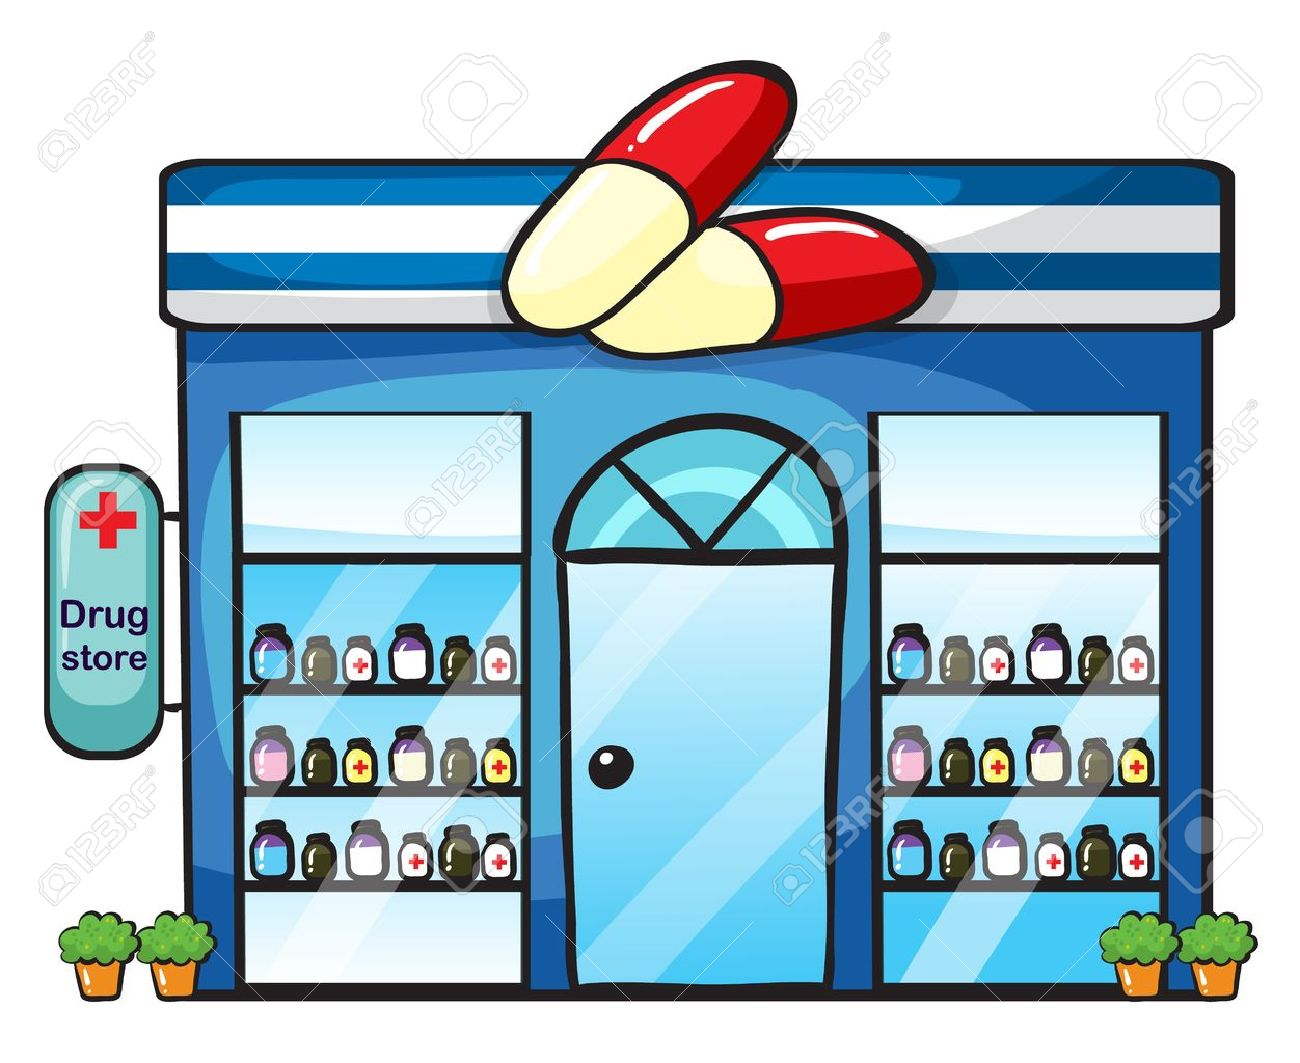 Apotheke clipart graphic stock Apotheke clipart 6 » Clipart Station graphic stock